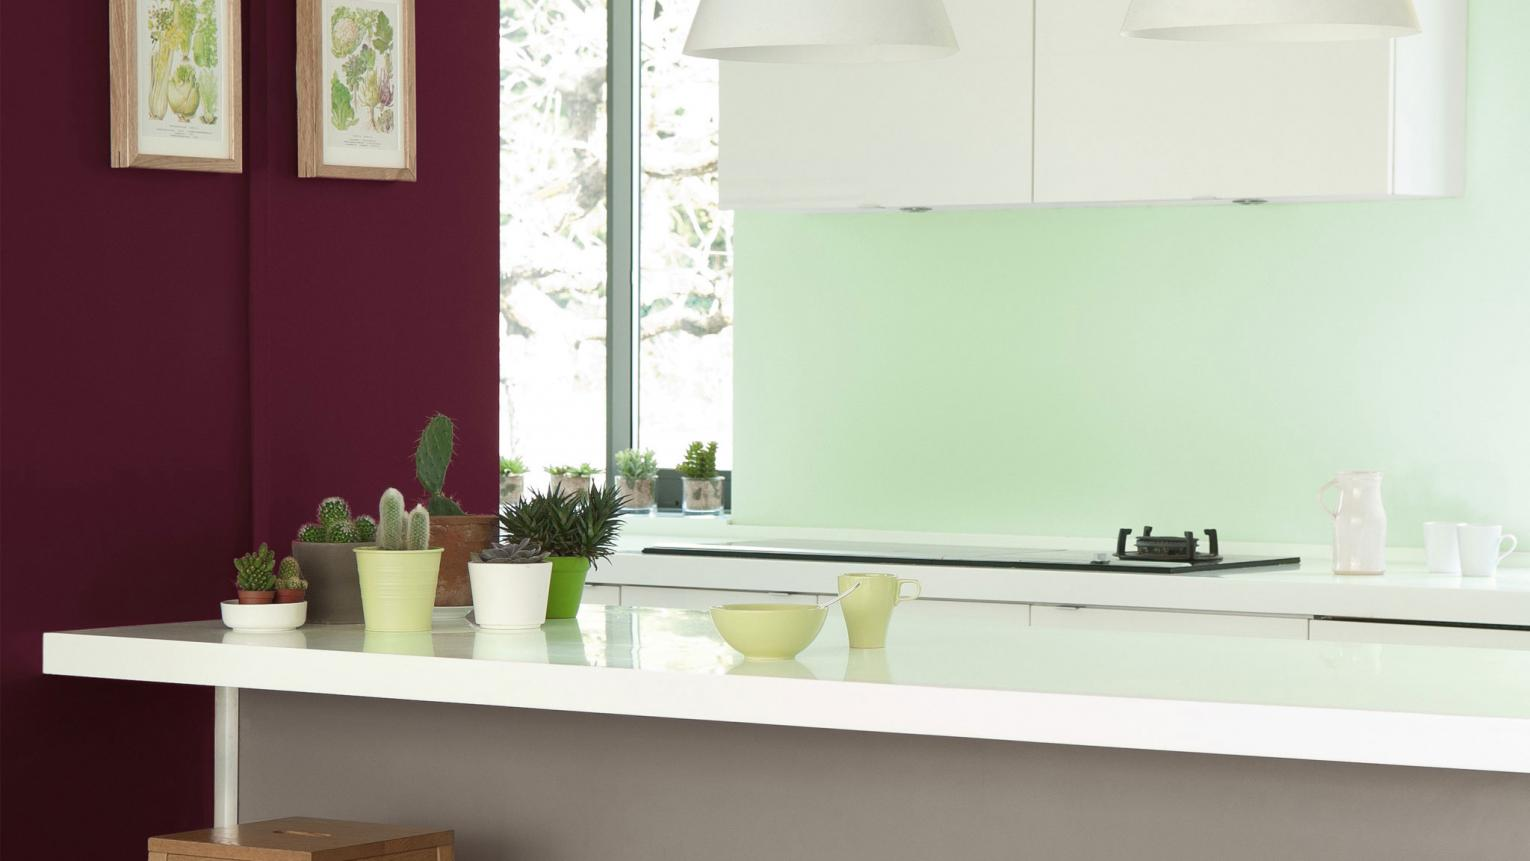 Decorate your kitchen in shades of burgundy and mint for a refreshing update on a classic colour scheme.